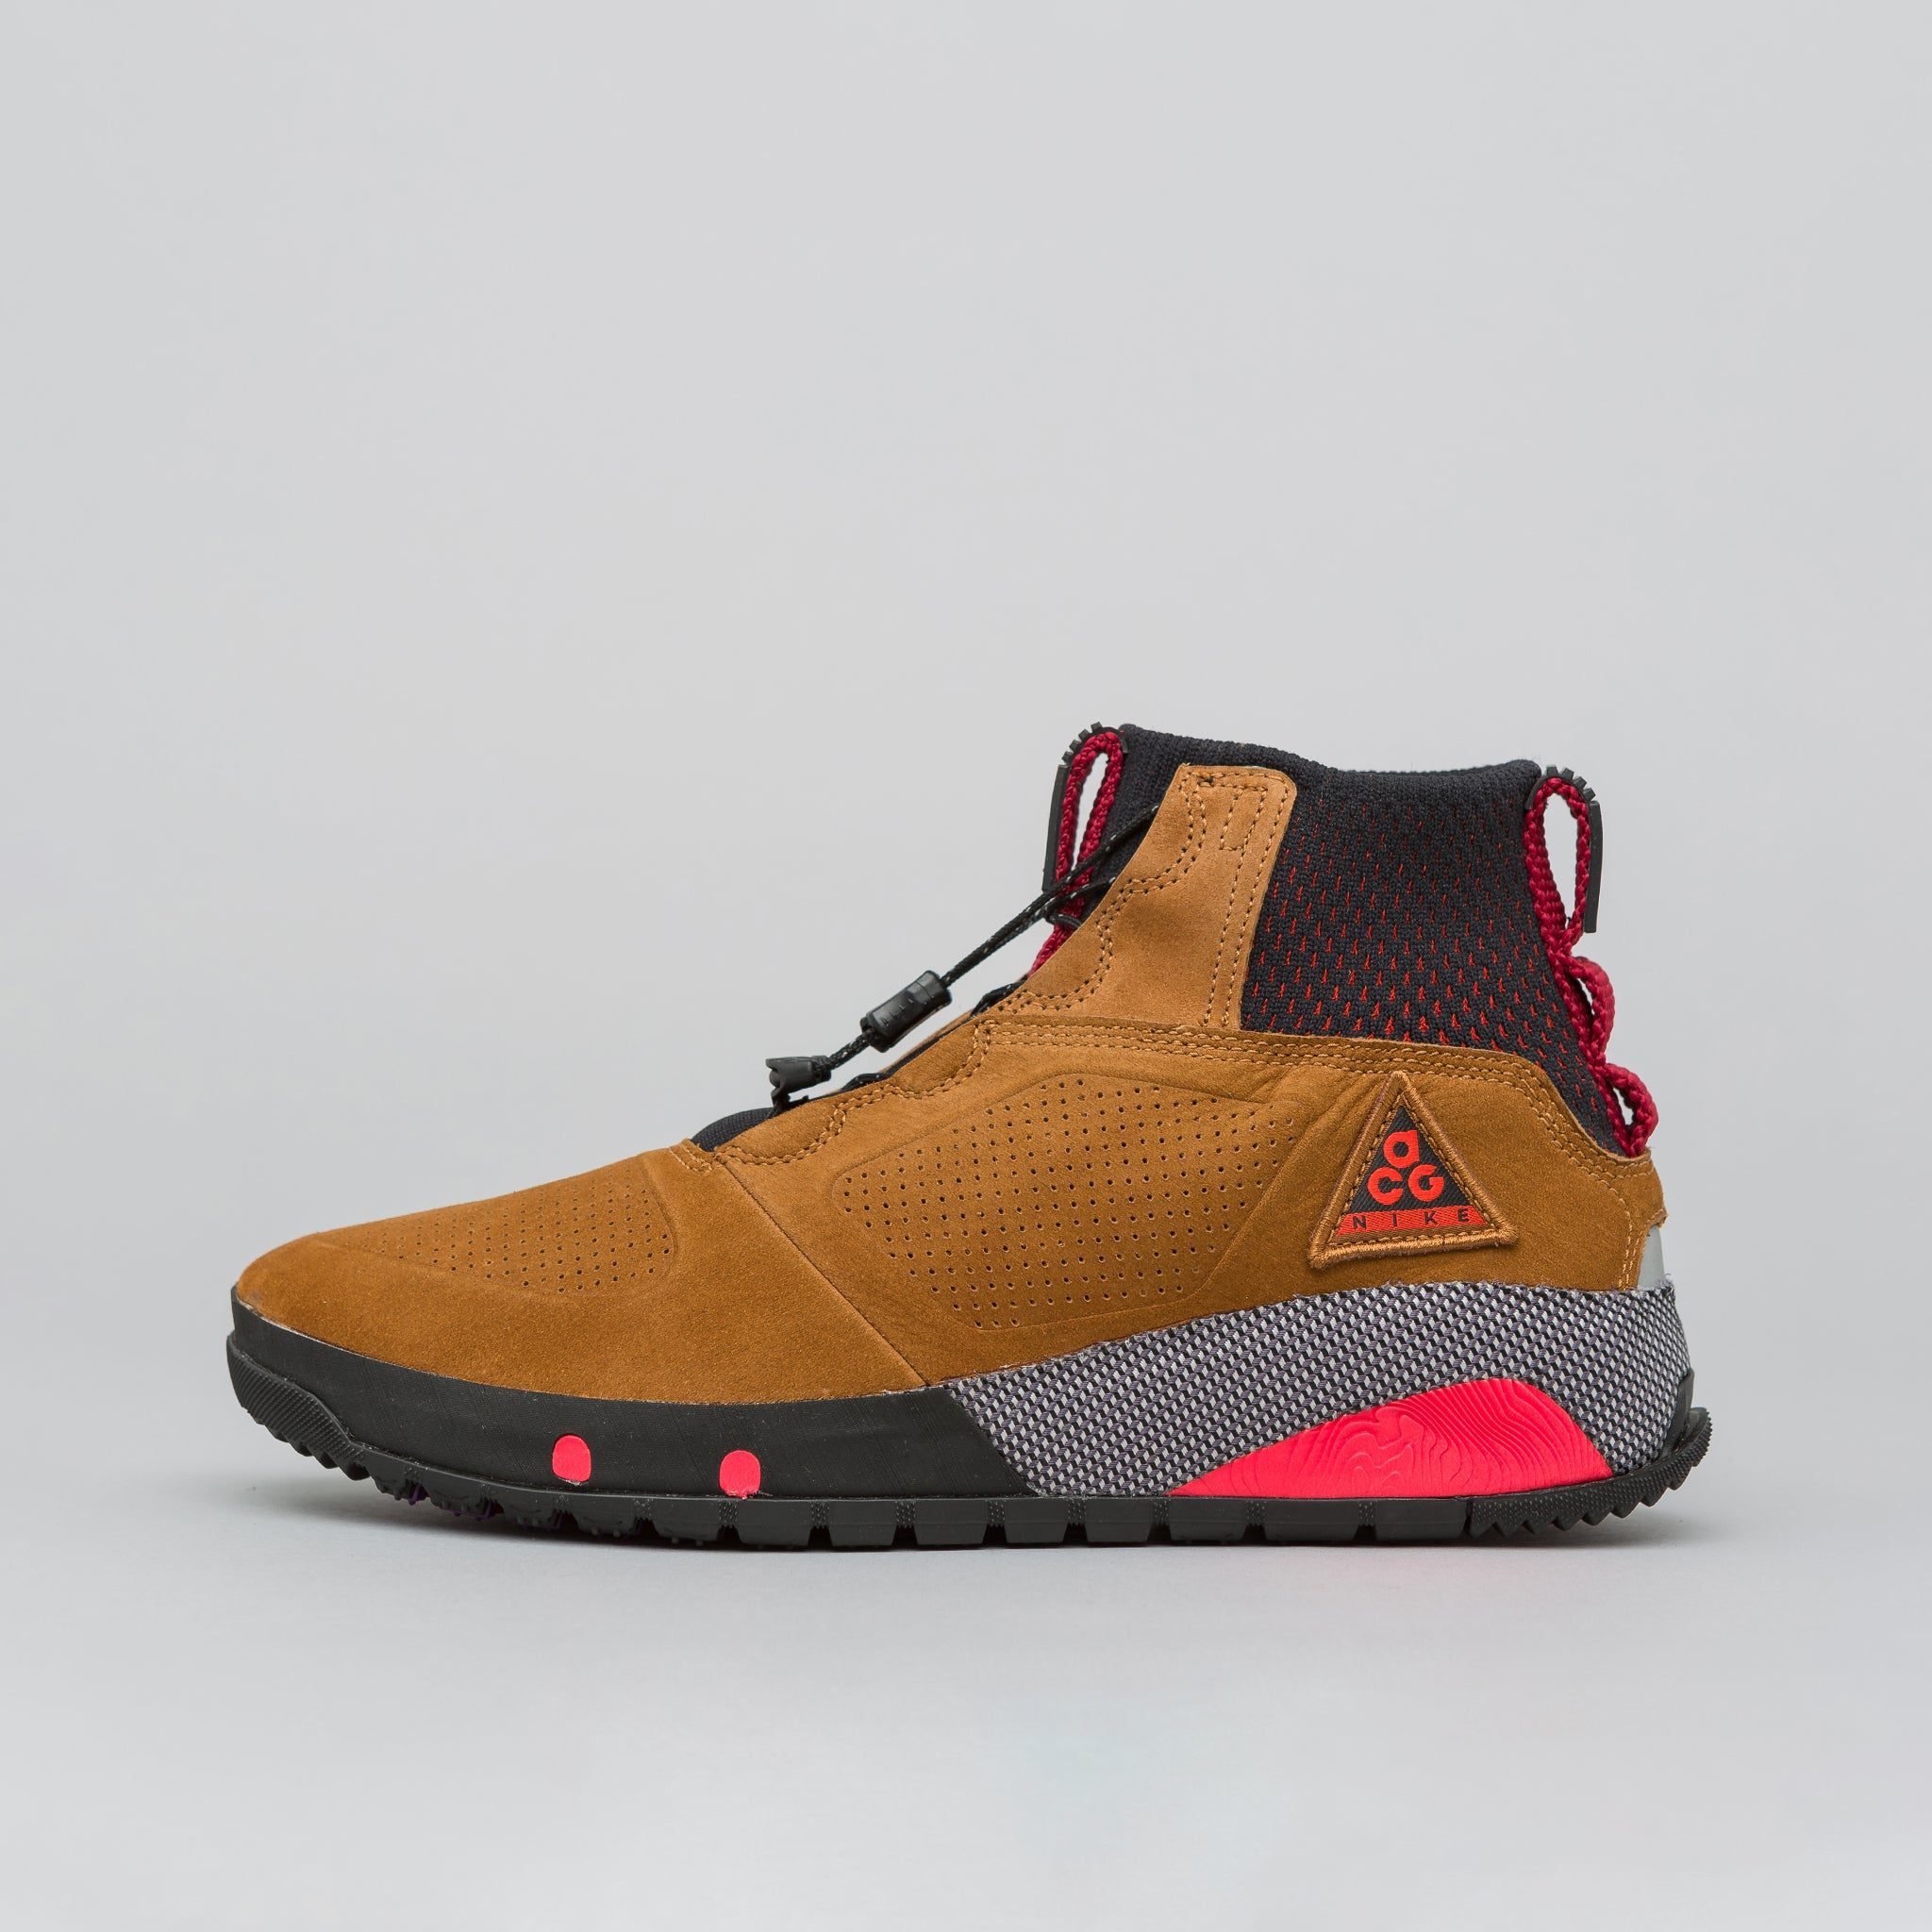 ACG Ruckel Ridge in British Tan